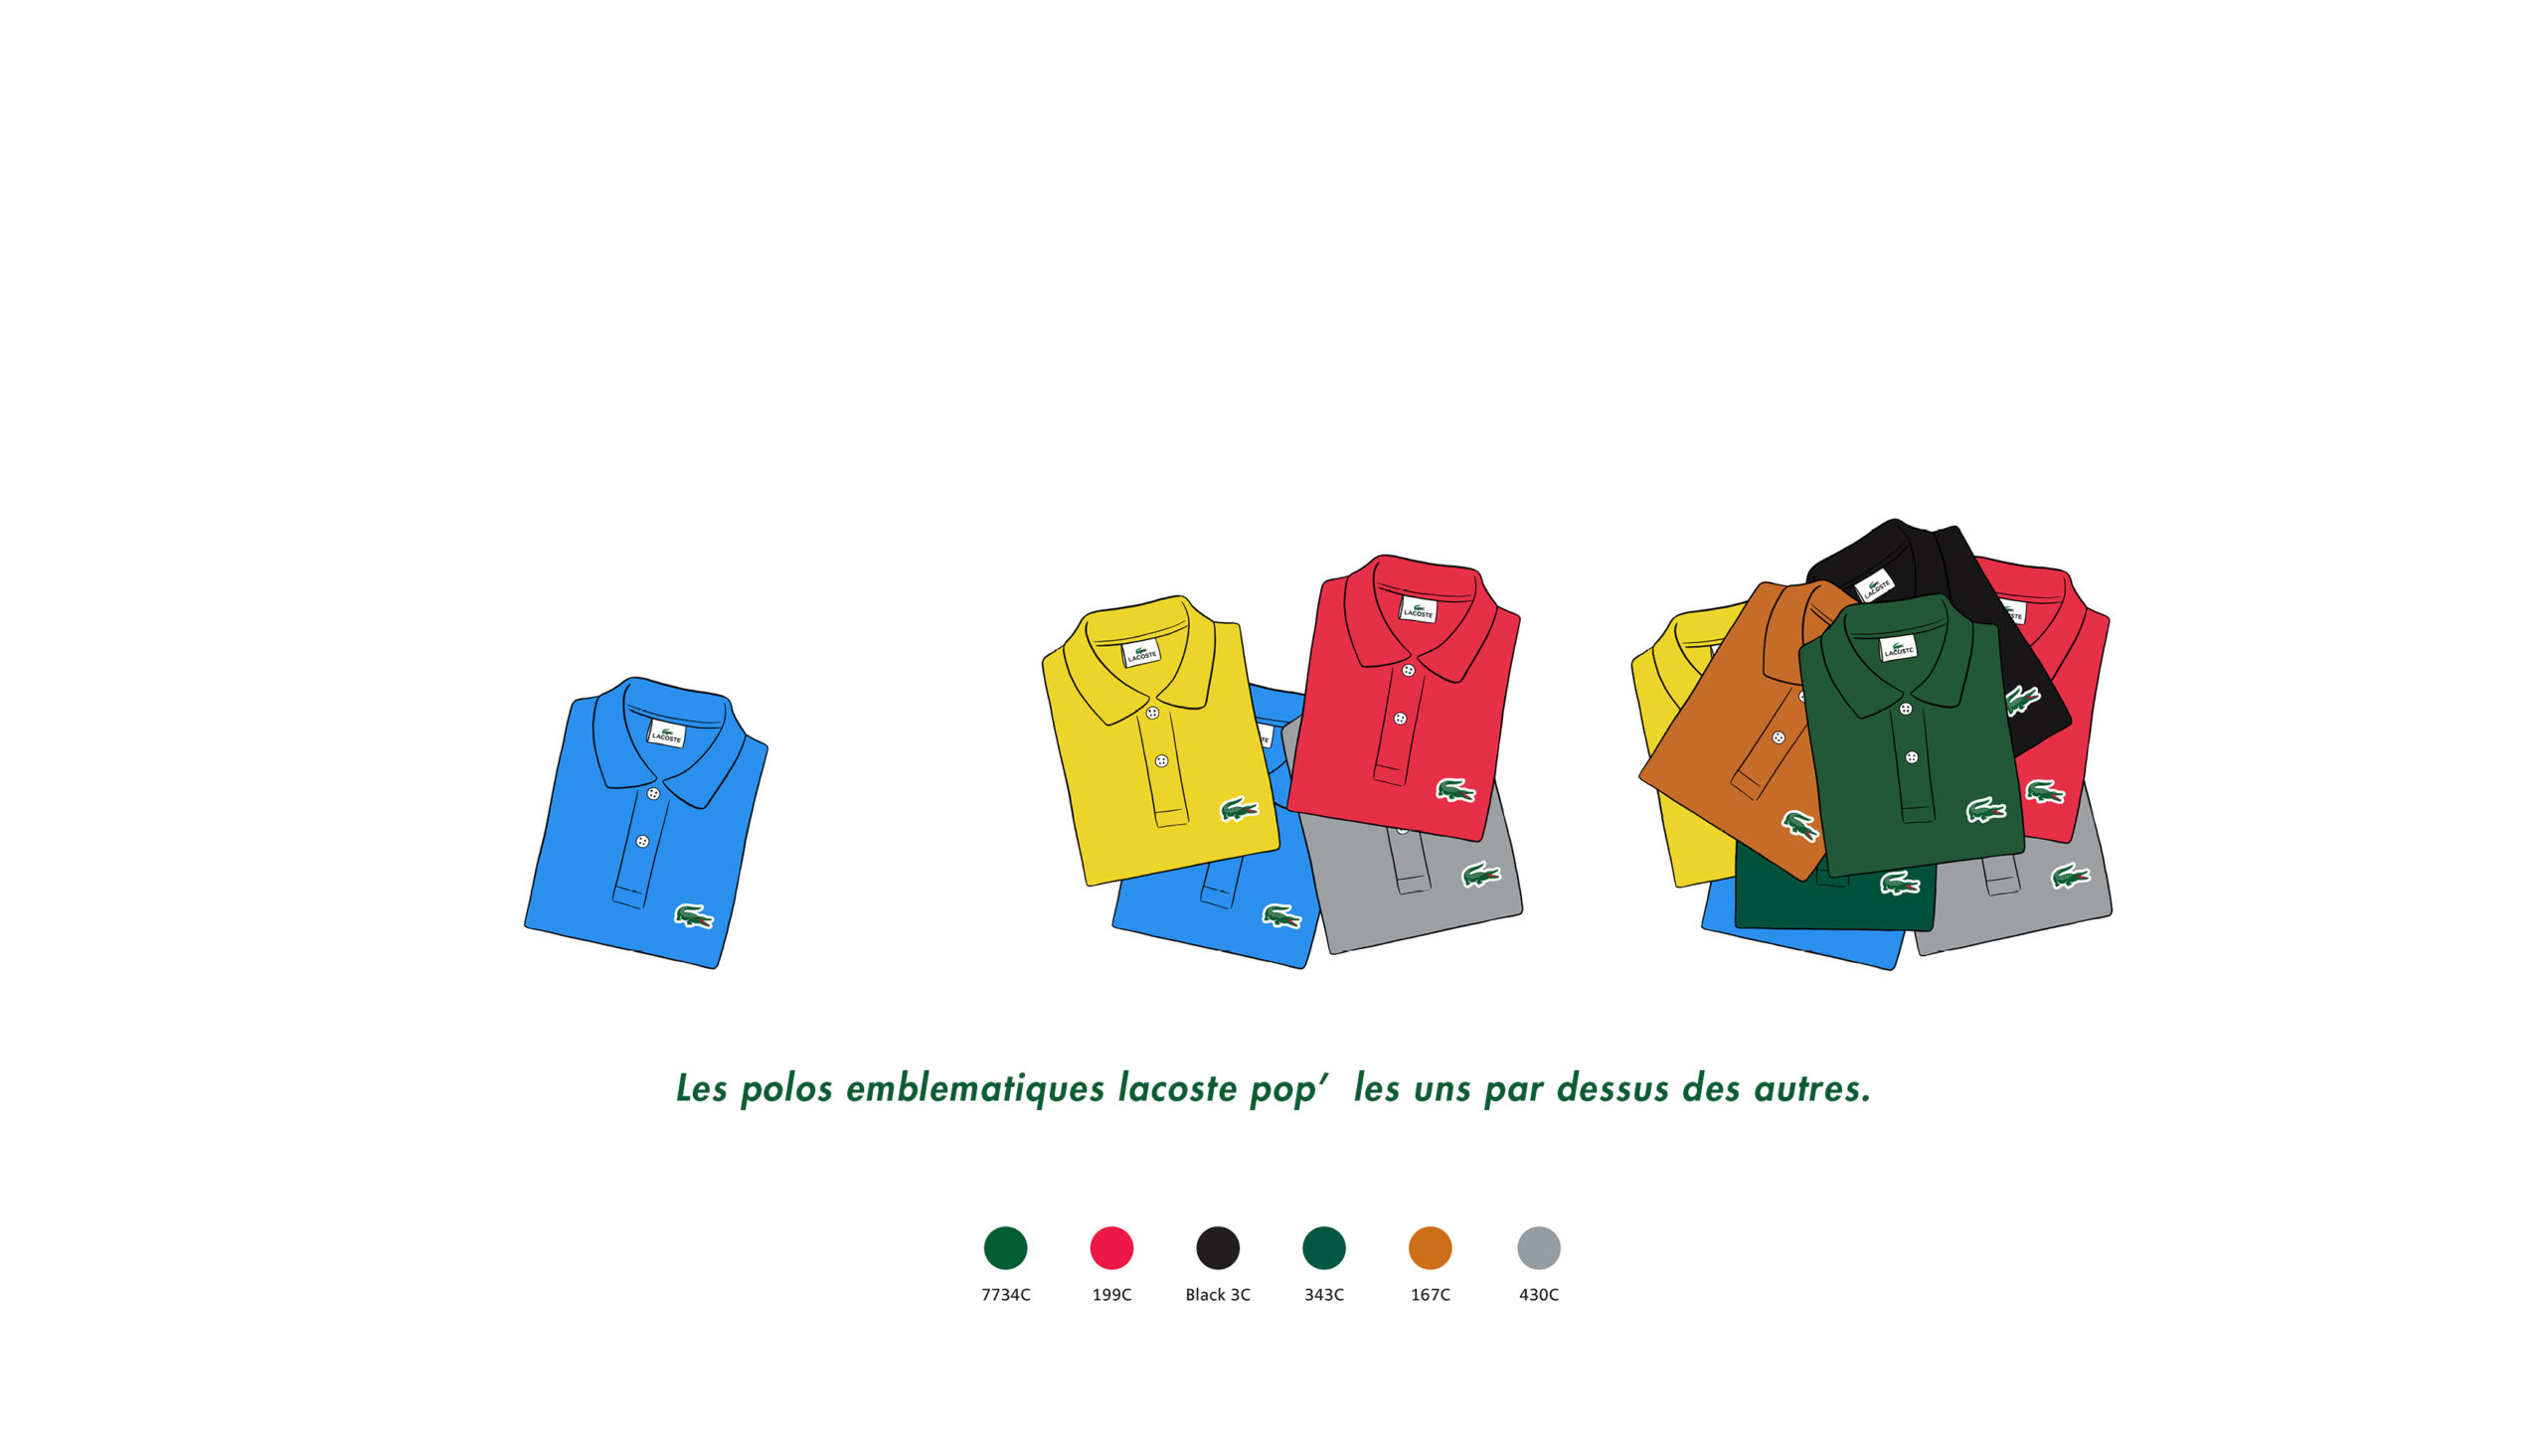 LACOSTE_STICKERS_HOBBYNOTE_R_0820